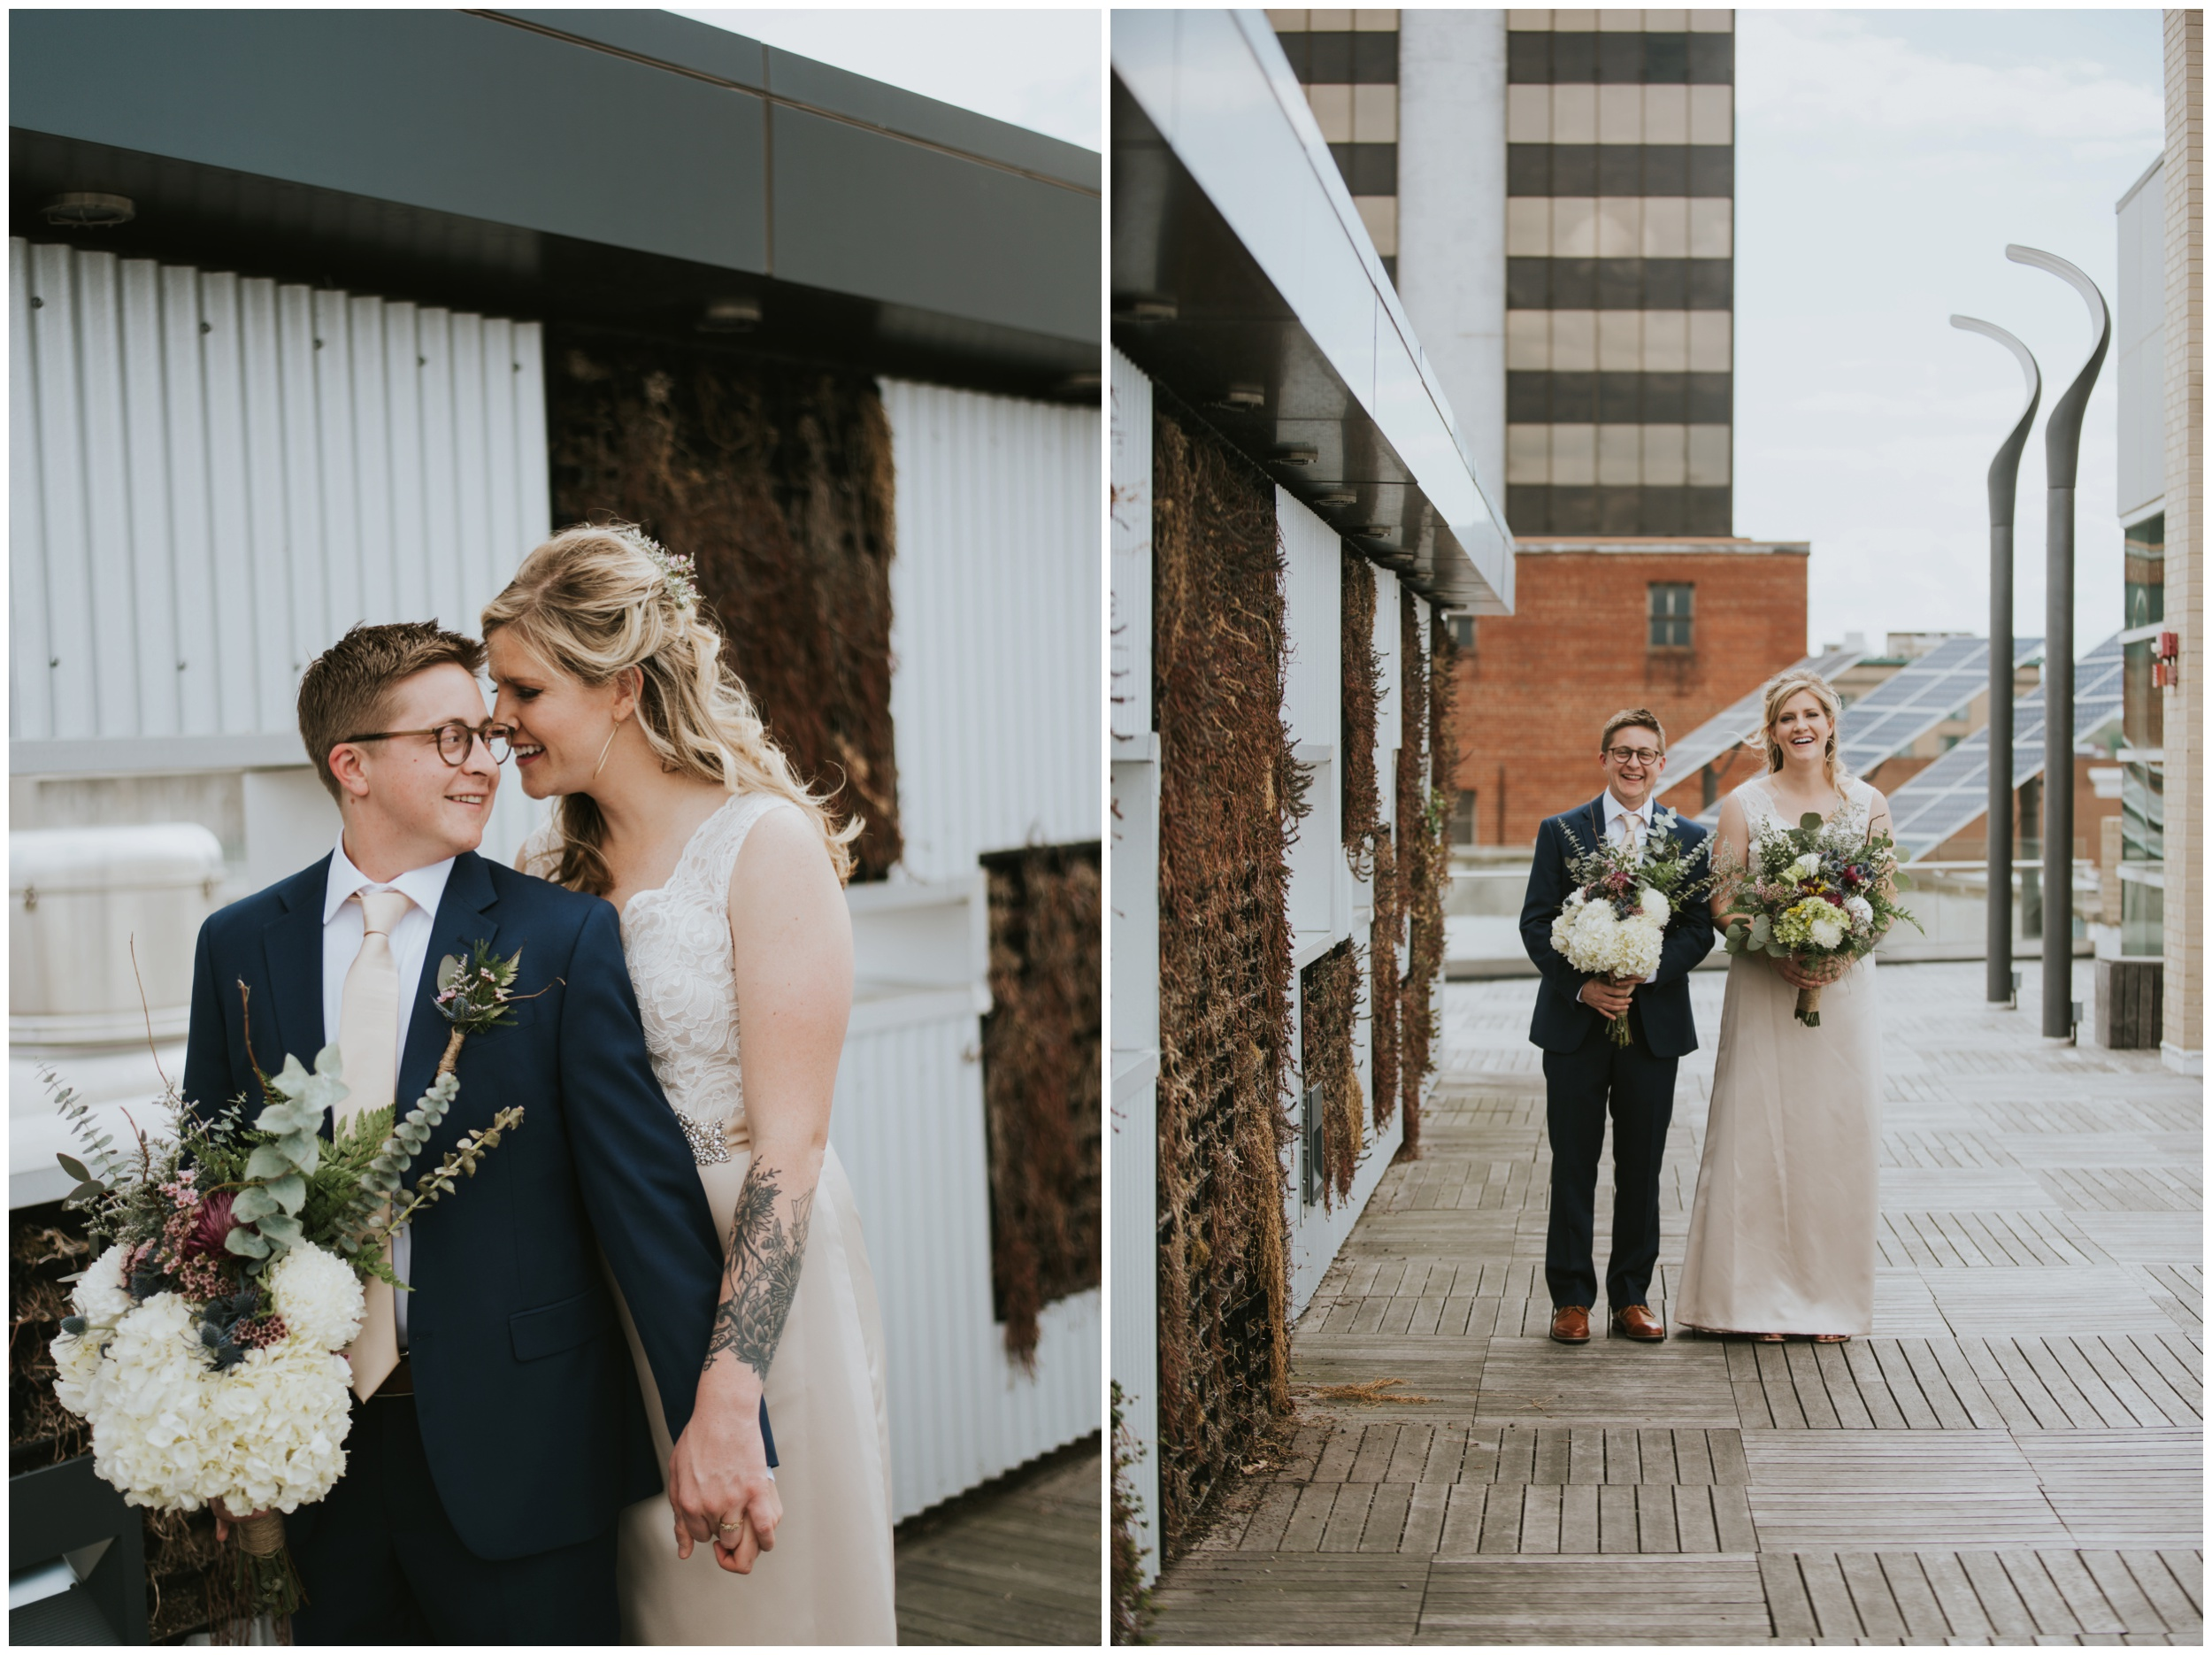 Downtown Roanoke Virginia Elopement  | www.riversandroadsphotography.com